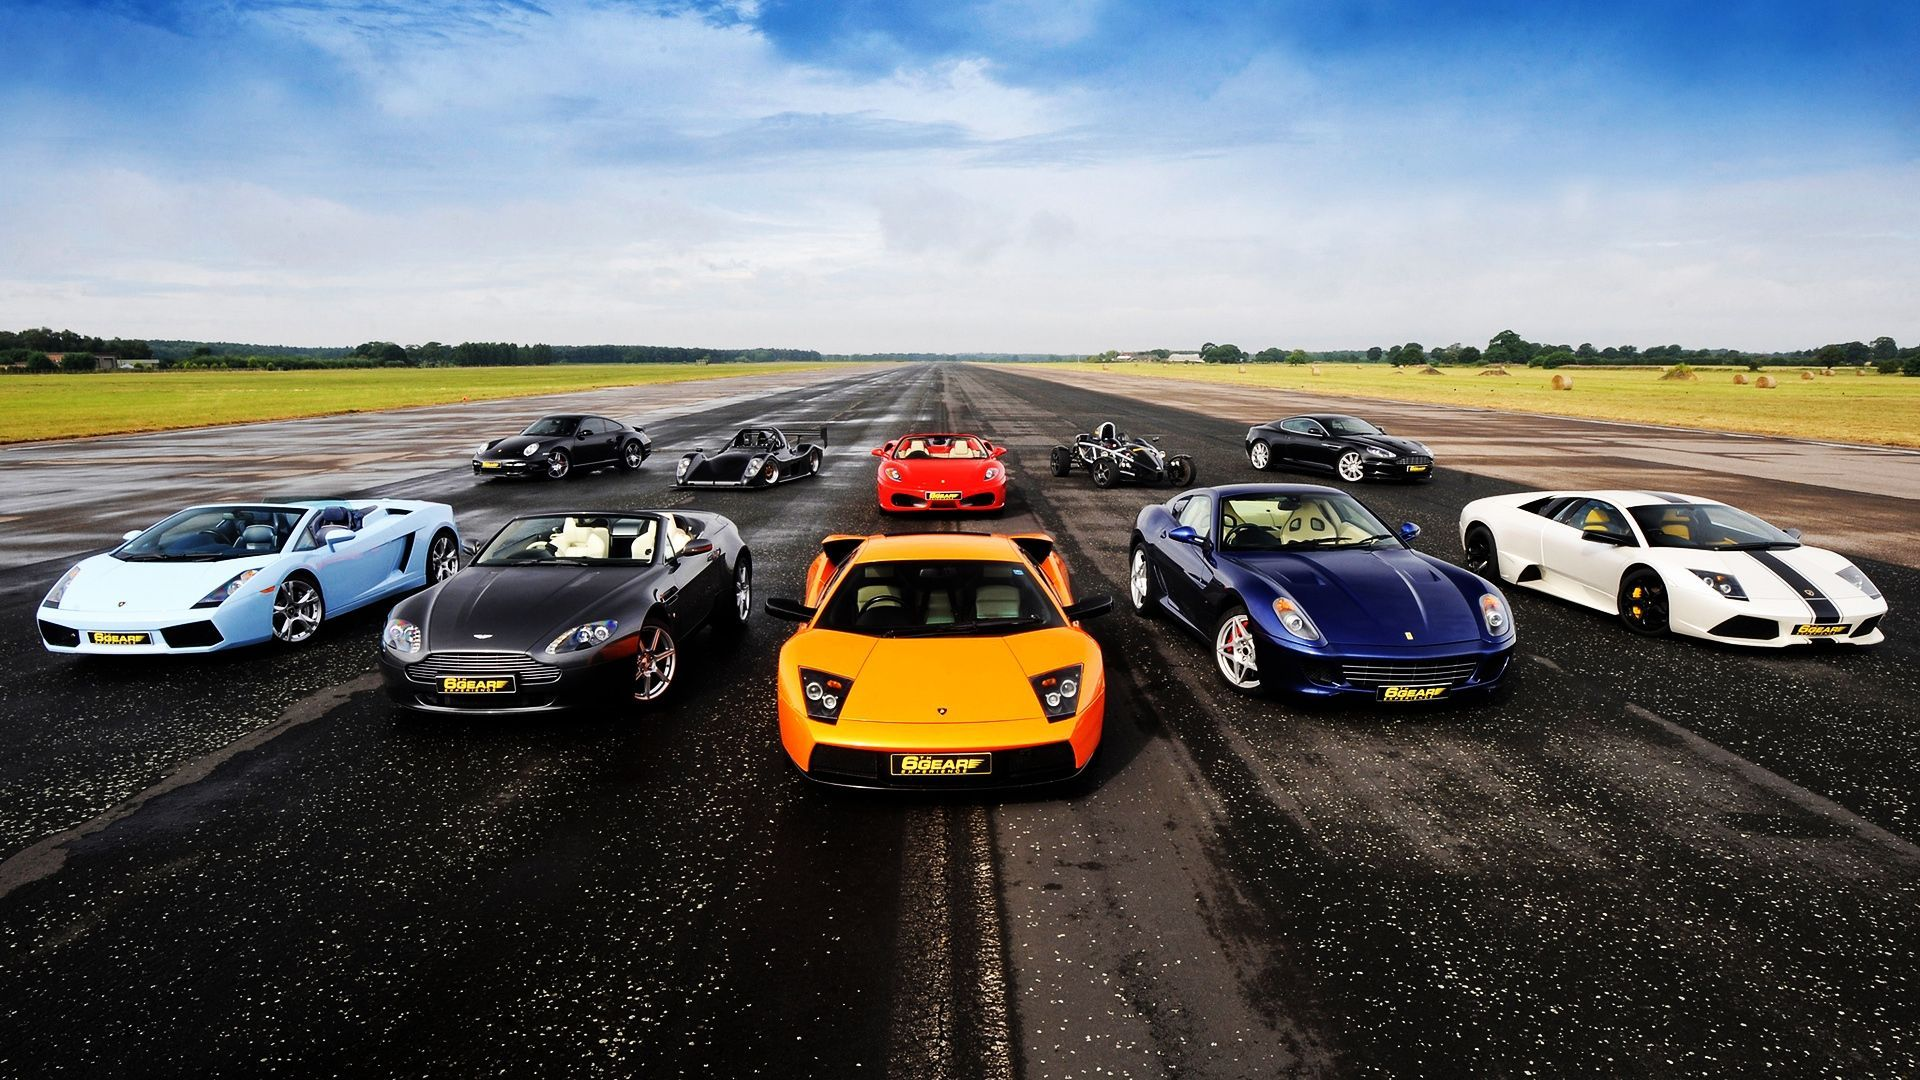 Cars And Other Vehicles Sports Car Wallpaper Hd Wallpapers Of Cars New Sports Cars